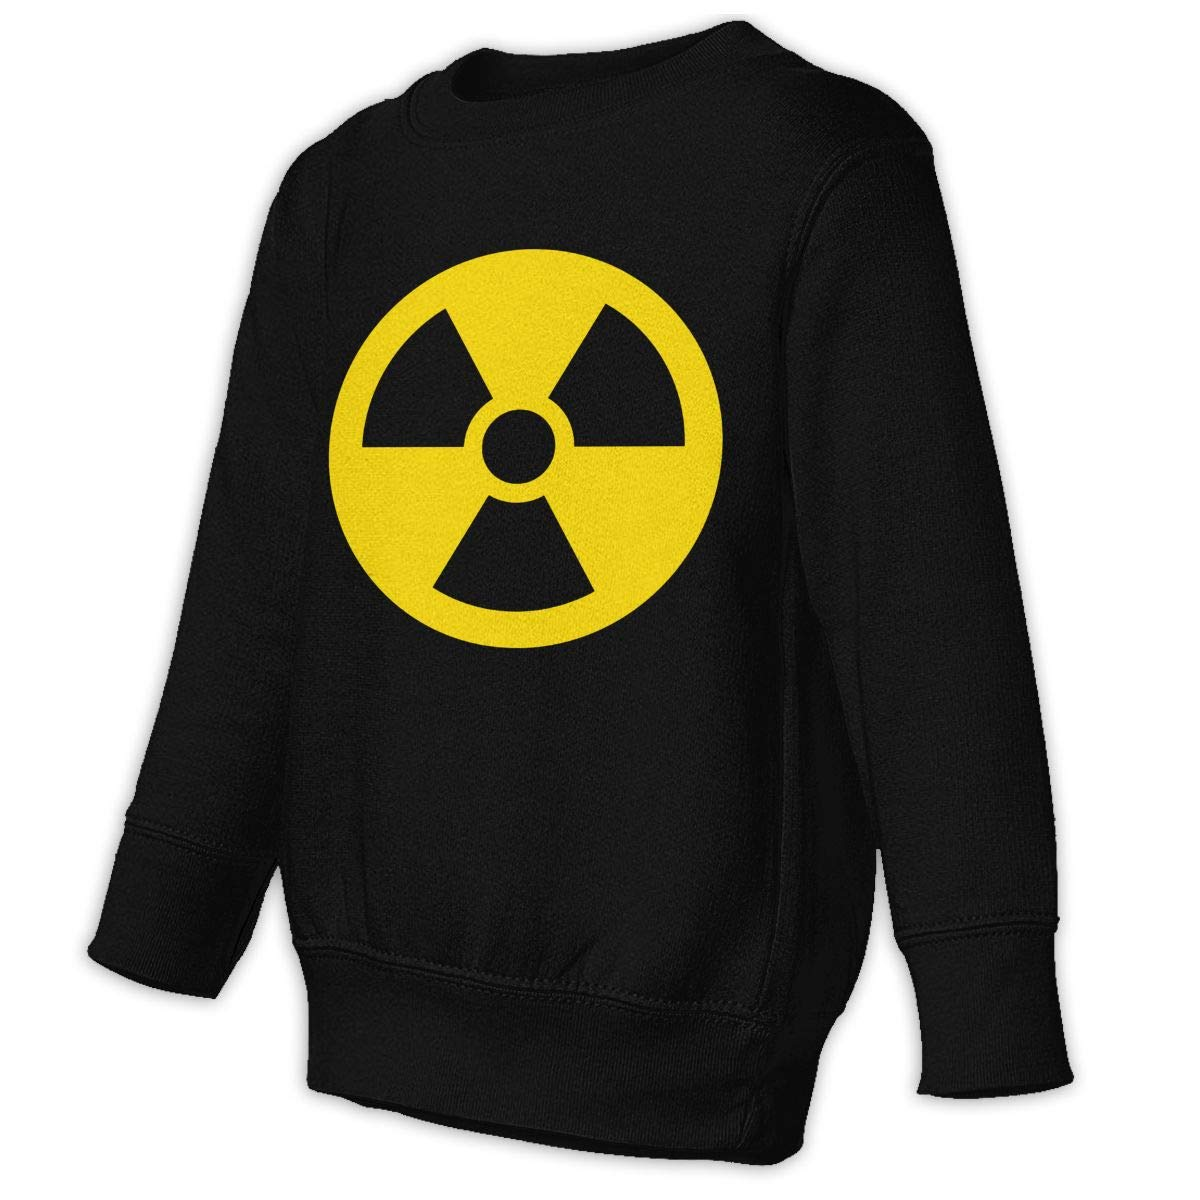 GHYNJUM Radioactive Warning Sign Juvenile Unisex Cotton Long Sleeve Round Neck Sweatshirt